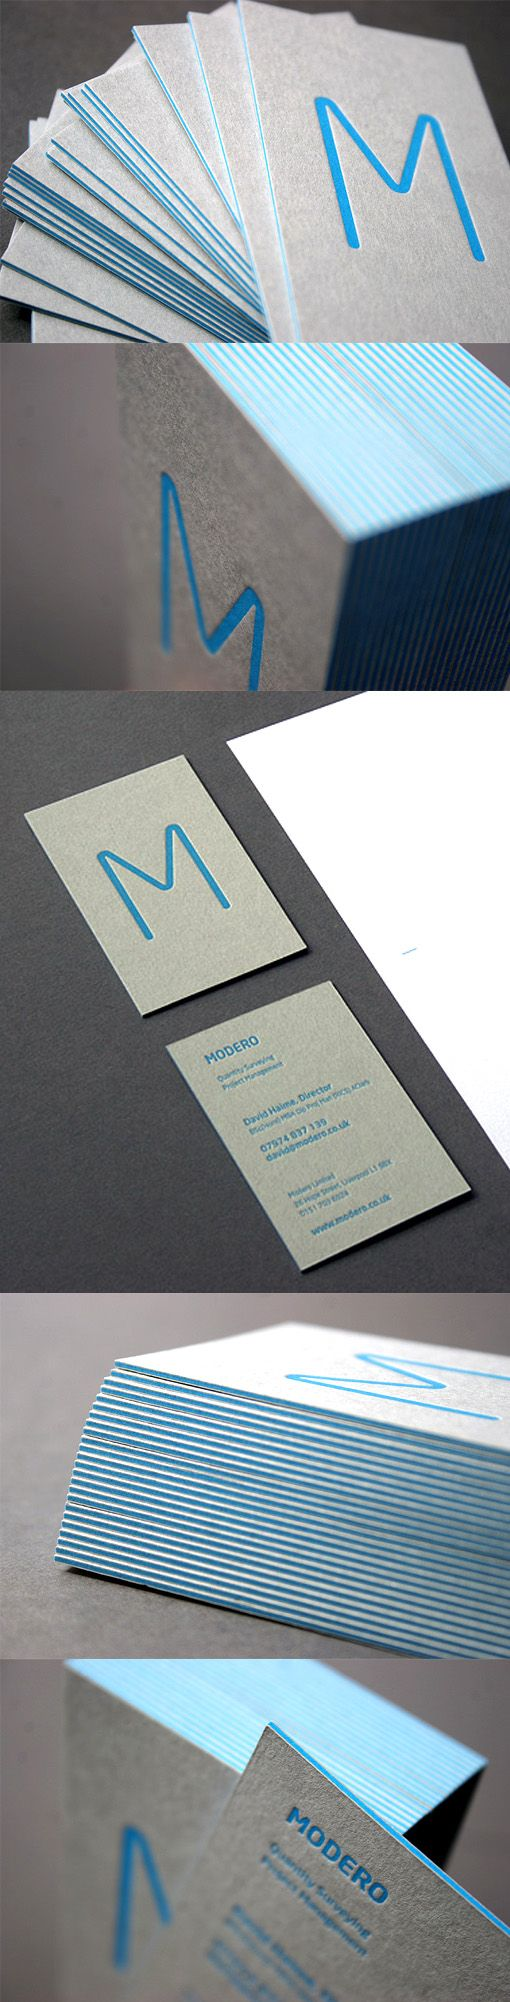 106 Best Business Card Design Images On Pinterest Business Card